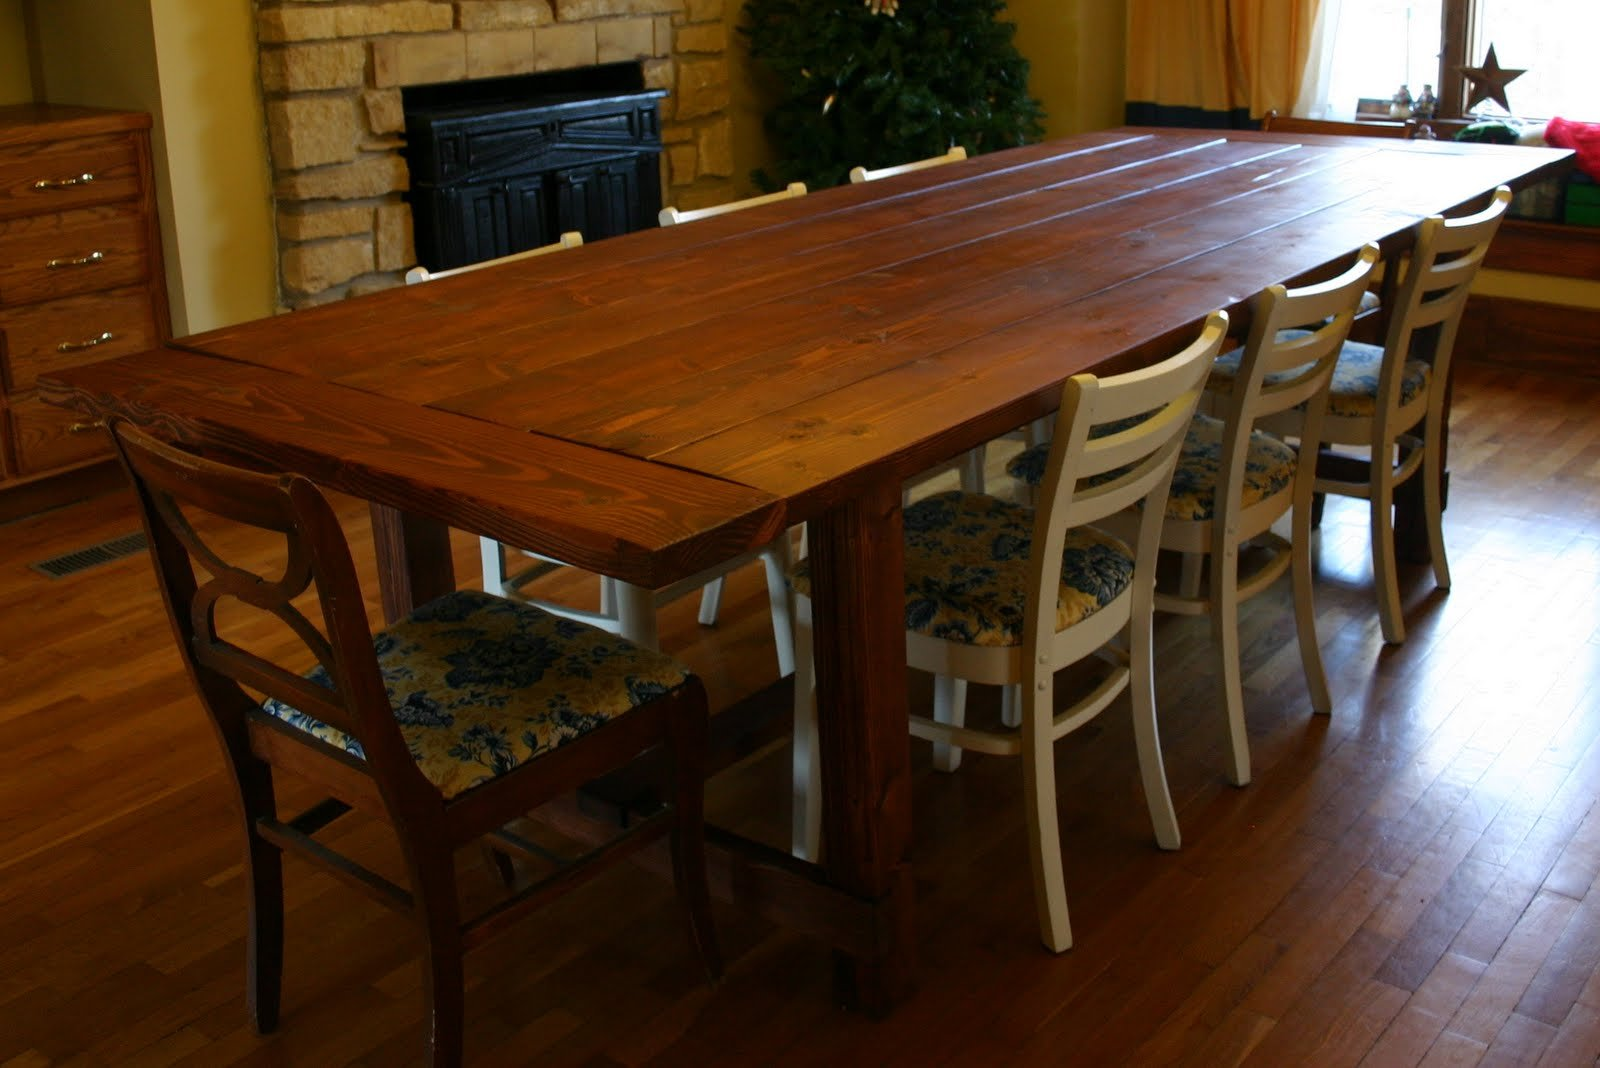 german jello salad rustic dining table i built from free plans a blog post is better than a. Black Bedroom Furniture Sets. Home Design Ideas